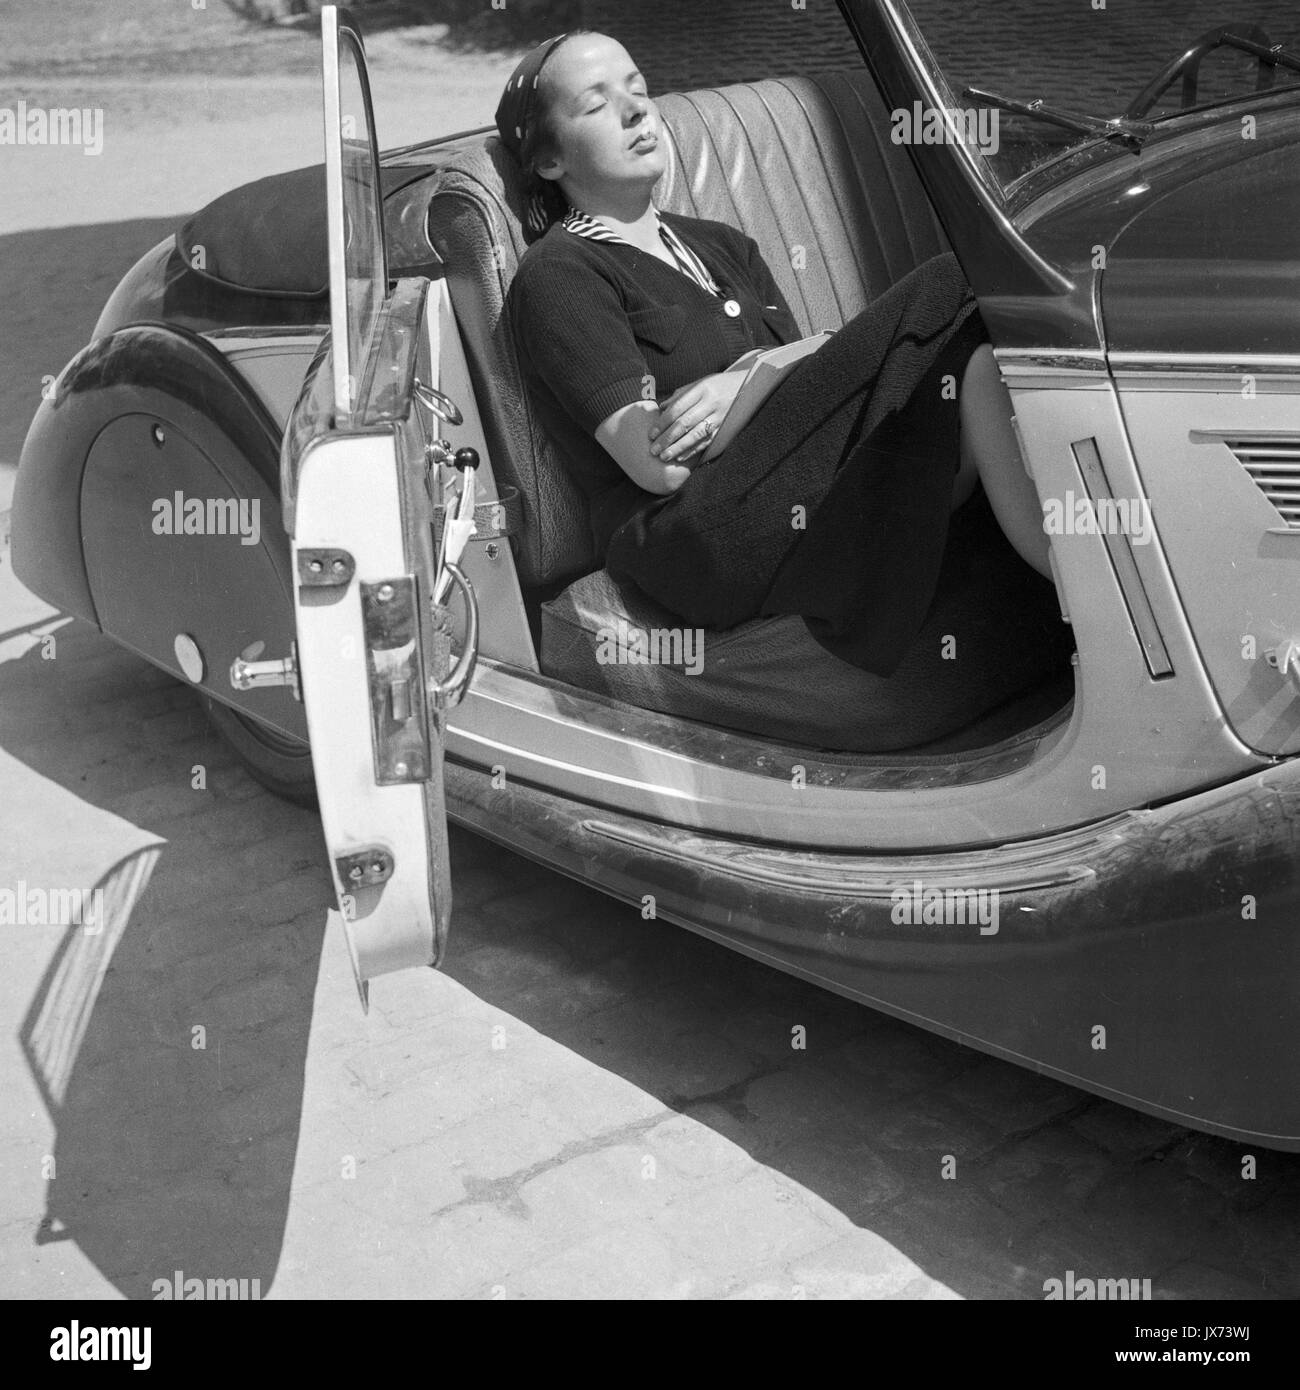 Woman resting in convertible parked outdoors. - Stock Image